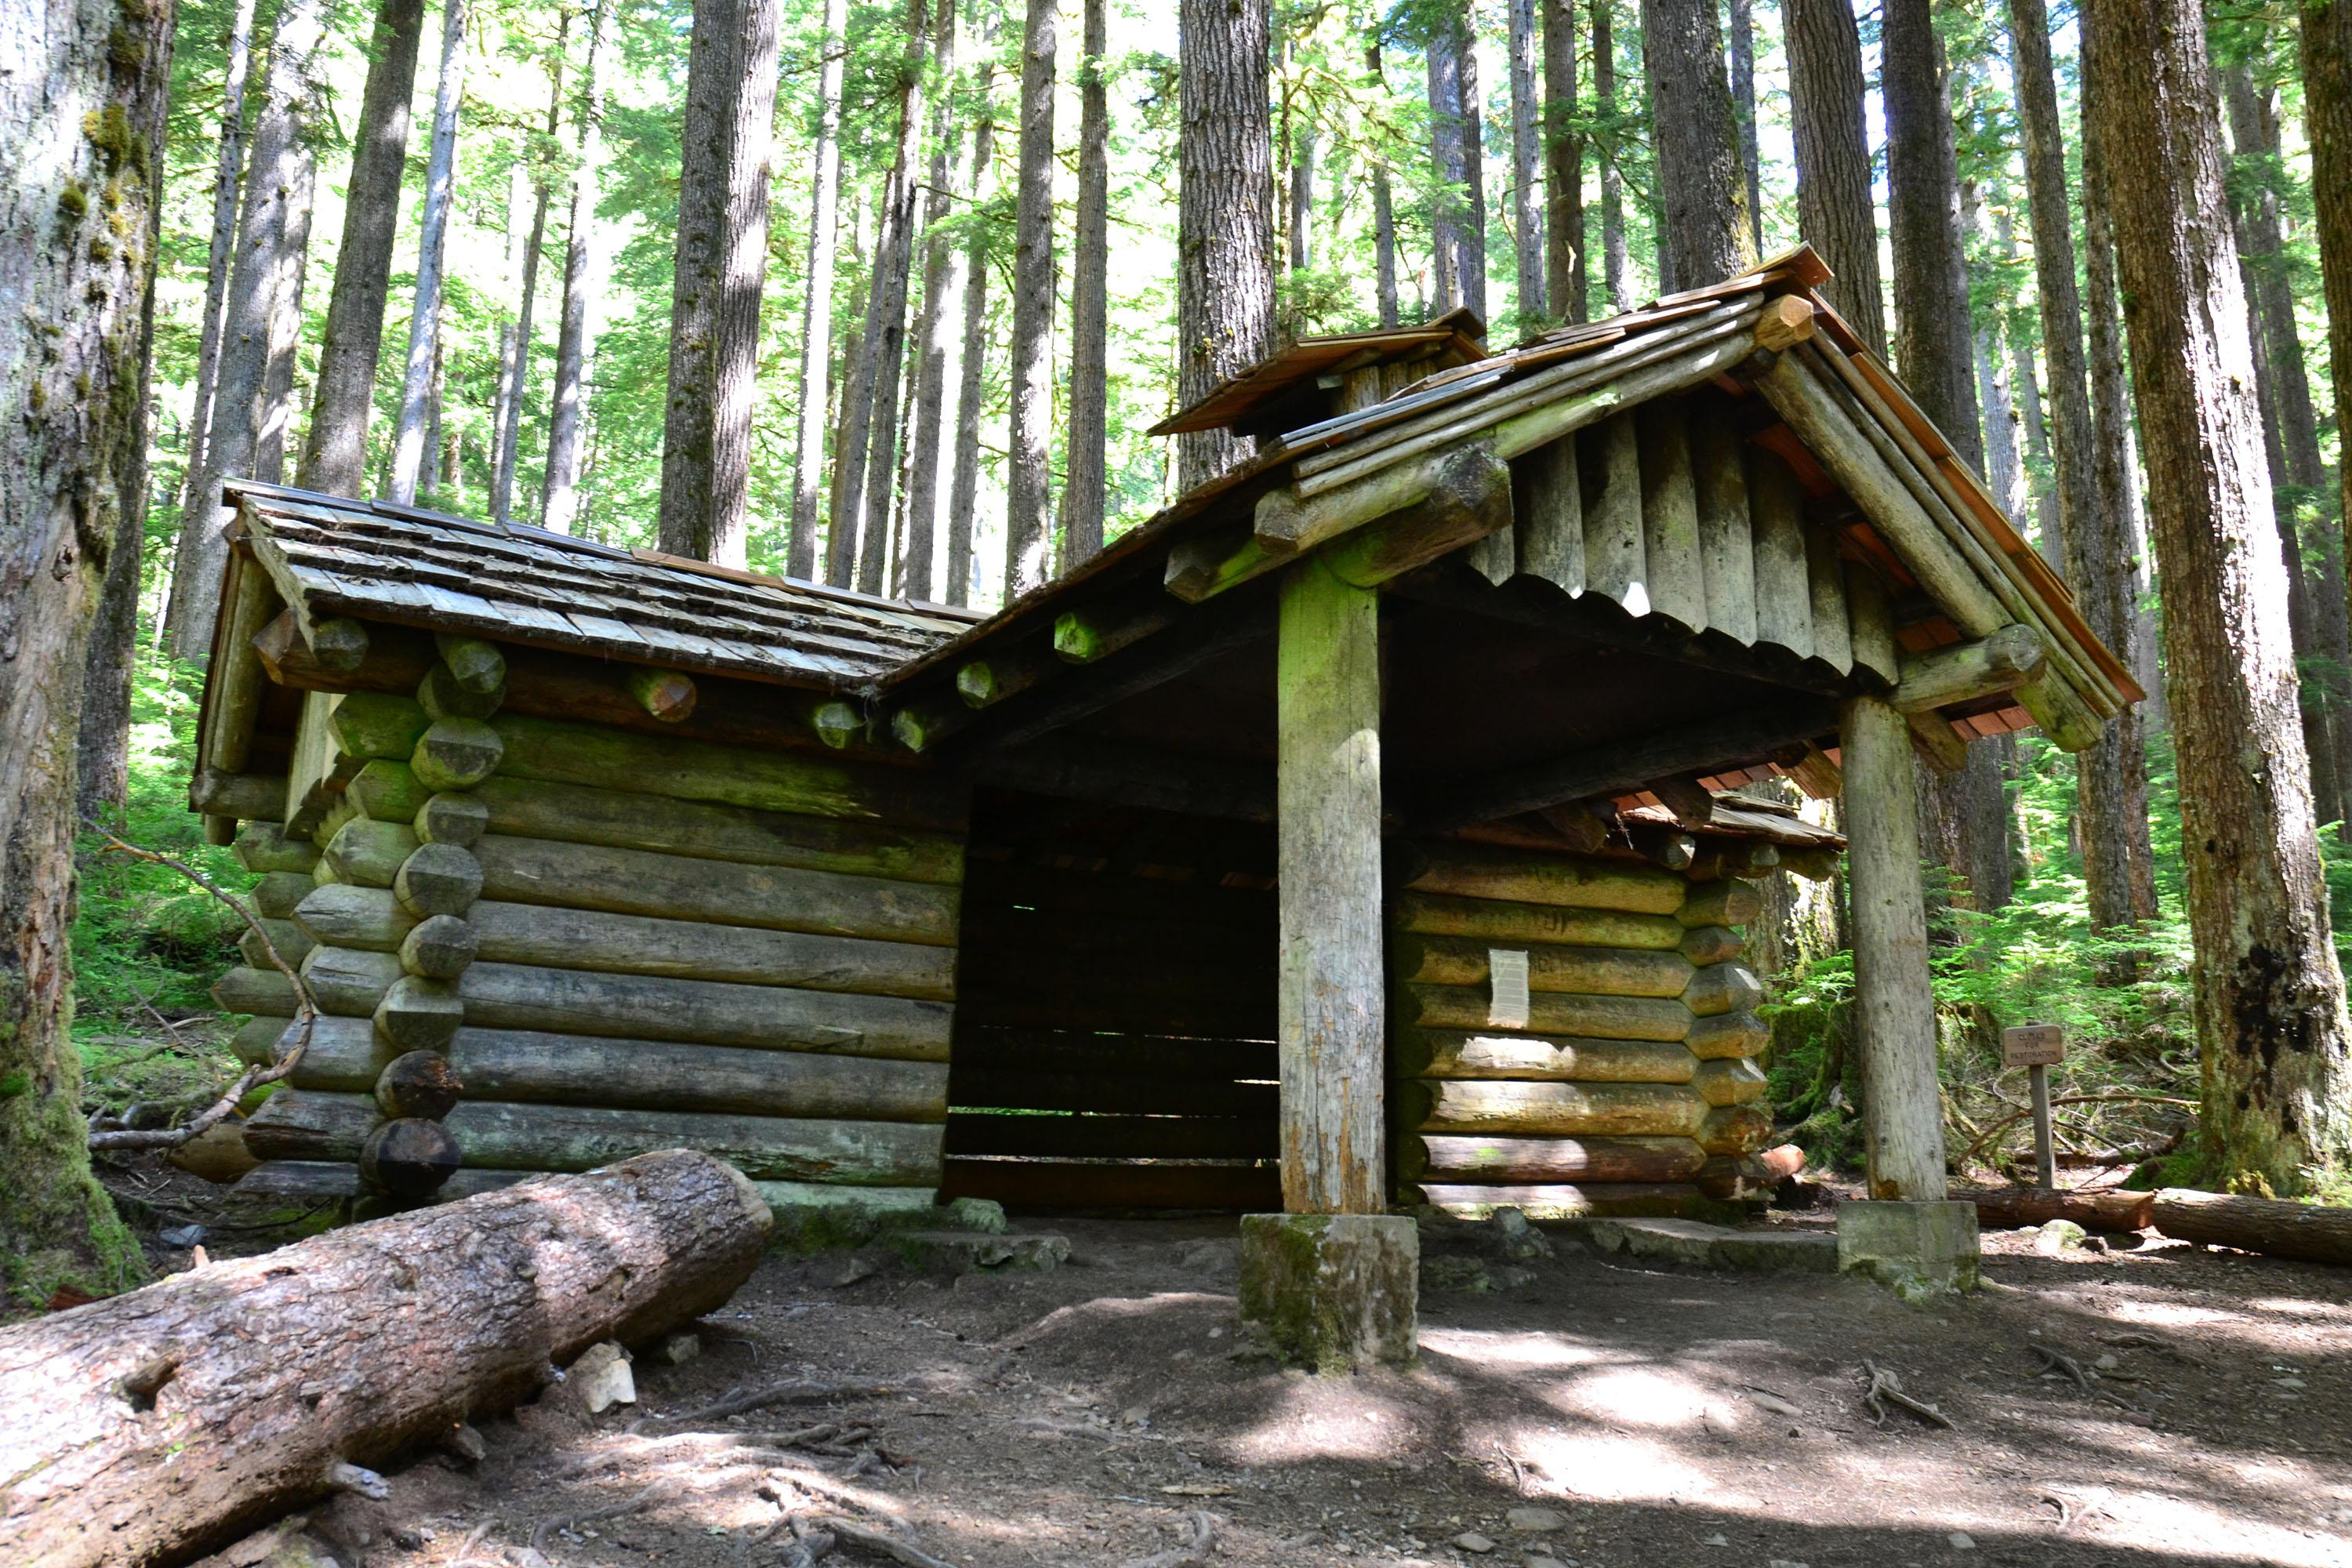 Lawsuit targets aging shelters in Olympic National Park | The